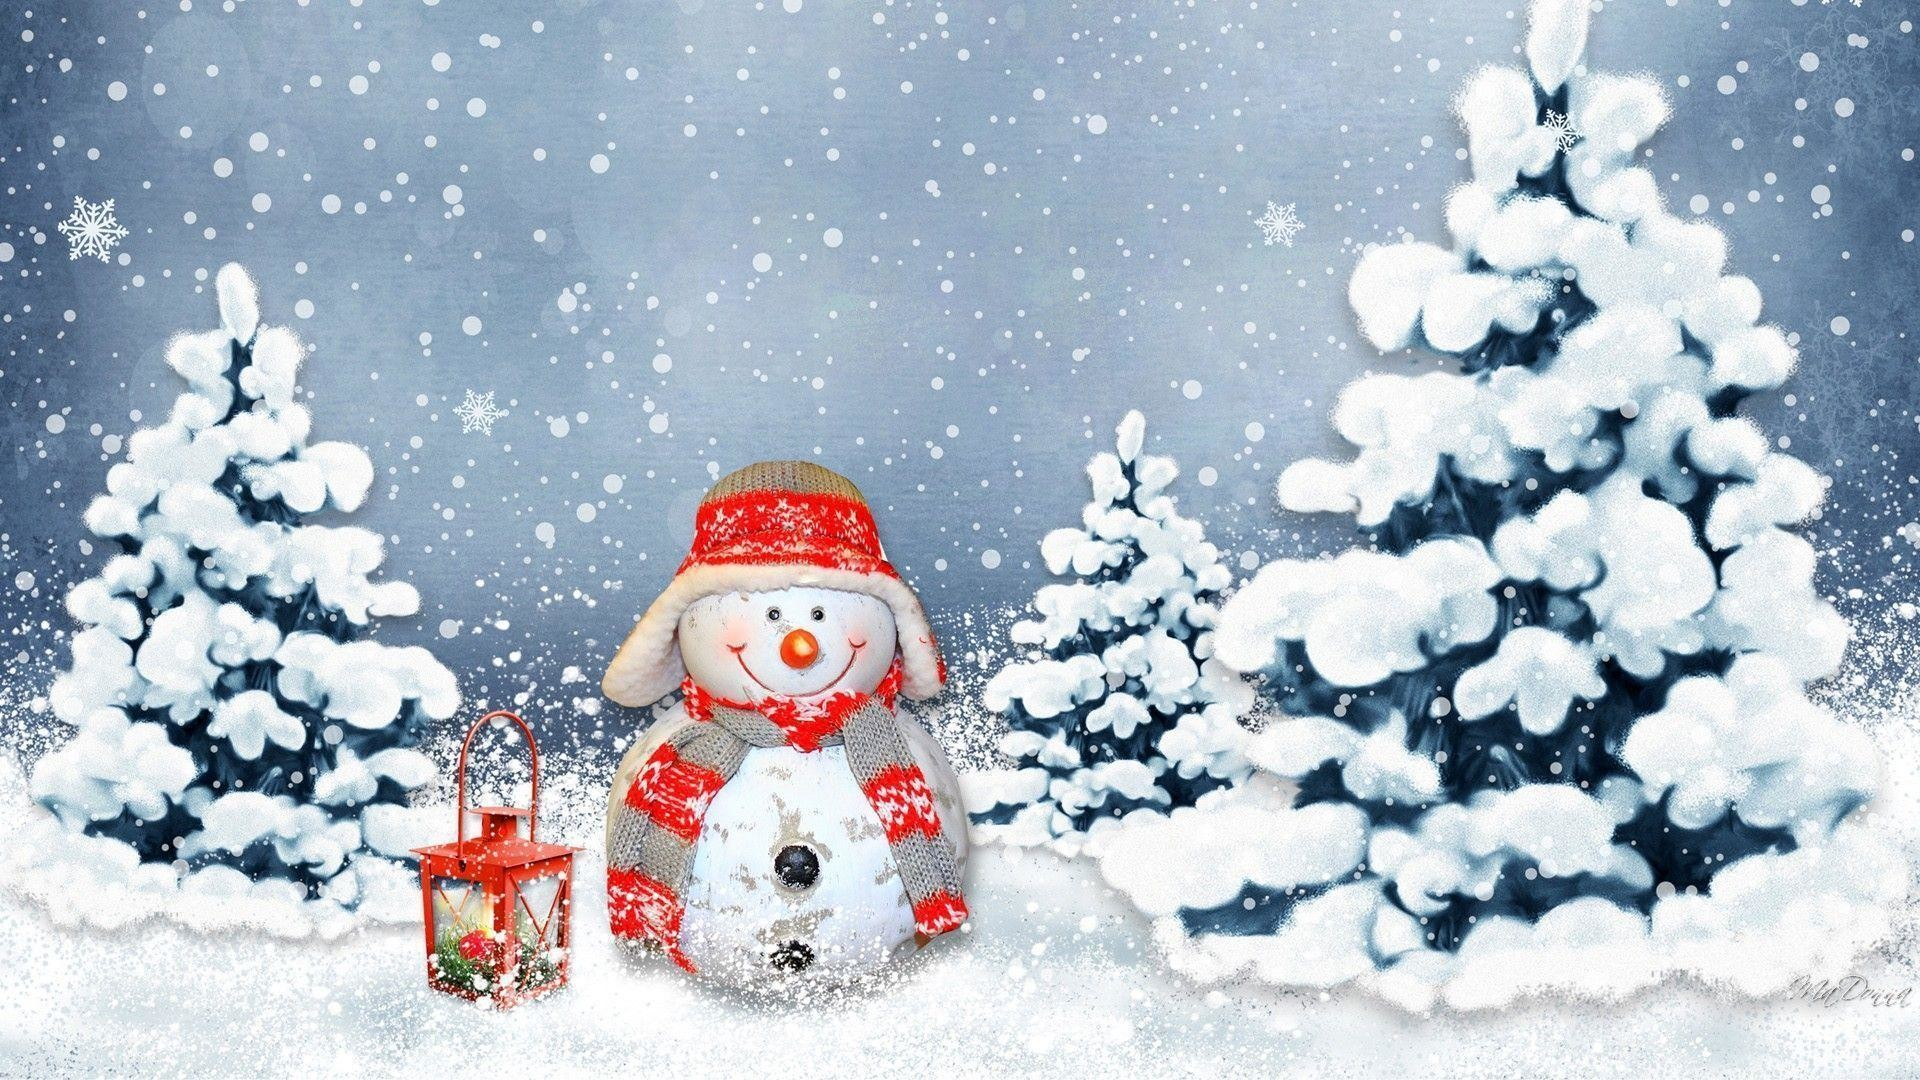 Res: 1920x1080, Winter Snowman Wallpapers - Wallpaper Cave